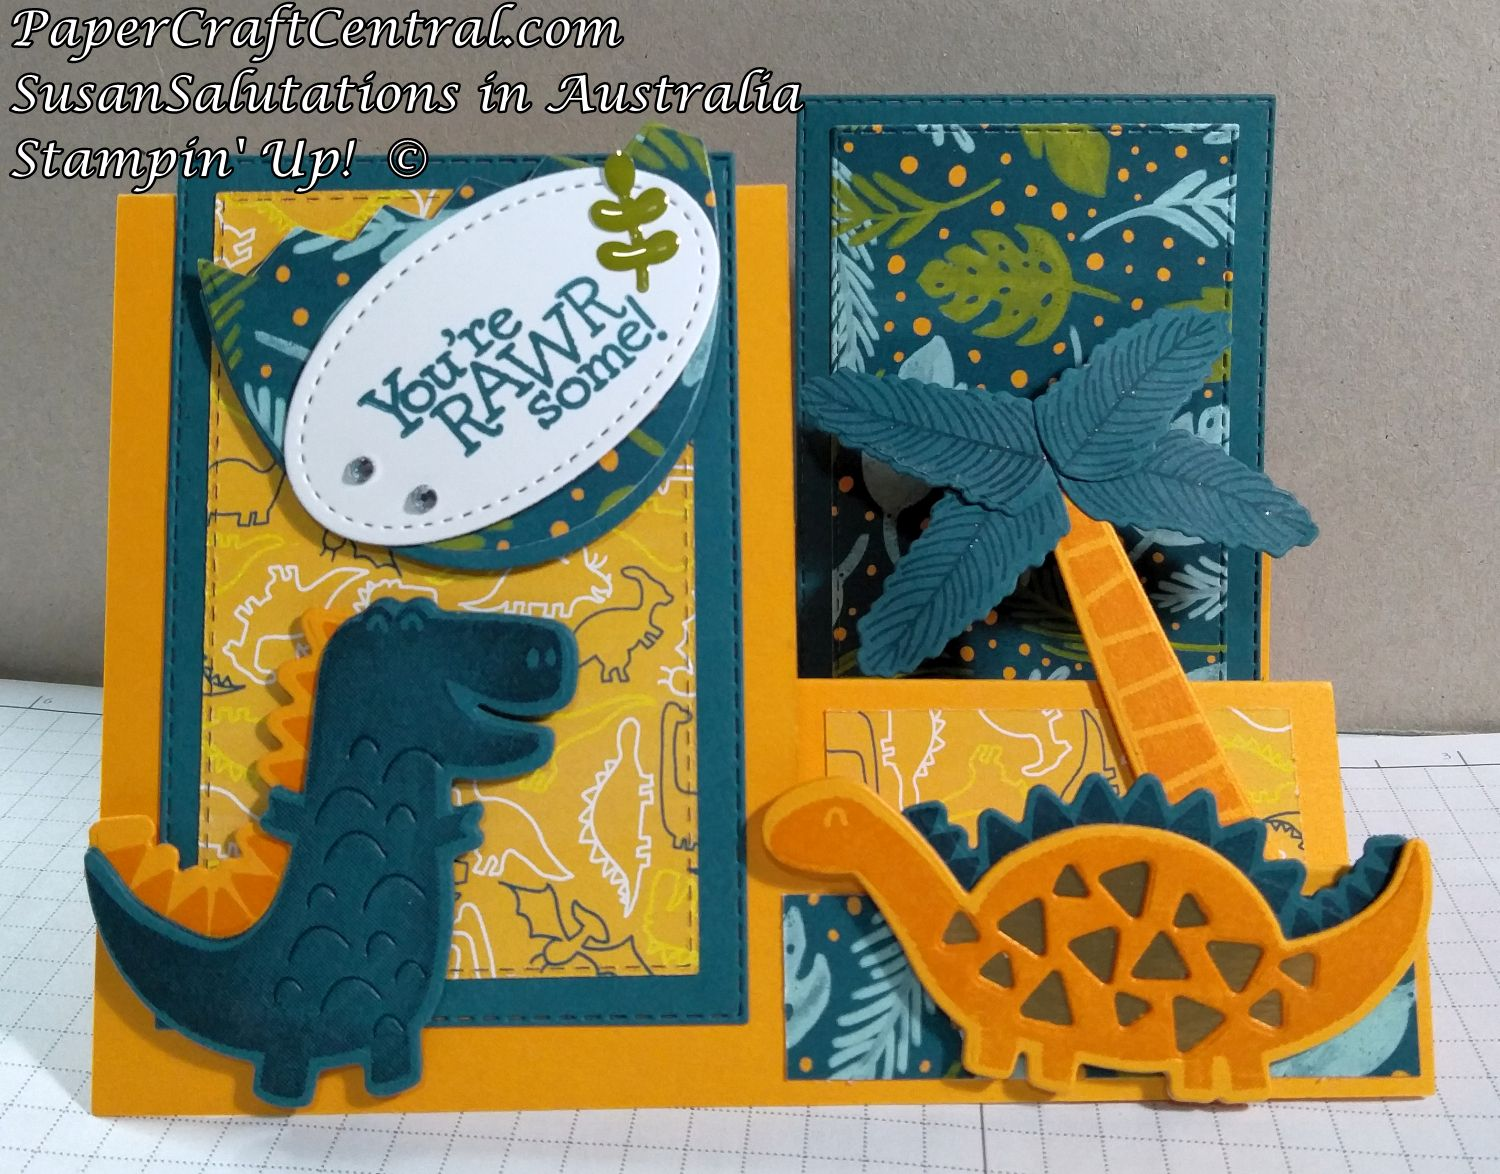 Dino Days Stair Step Card